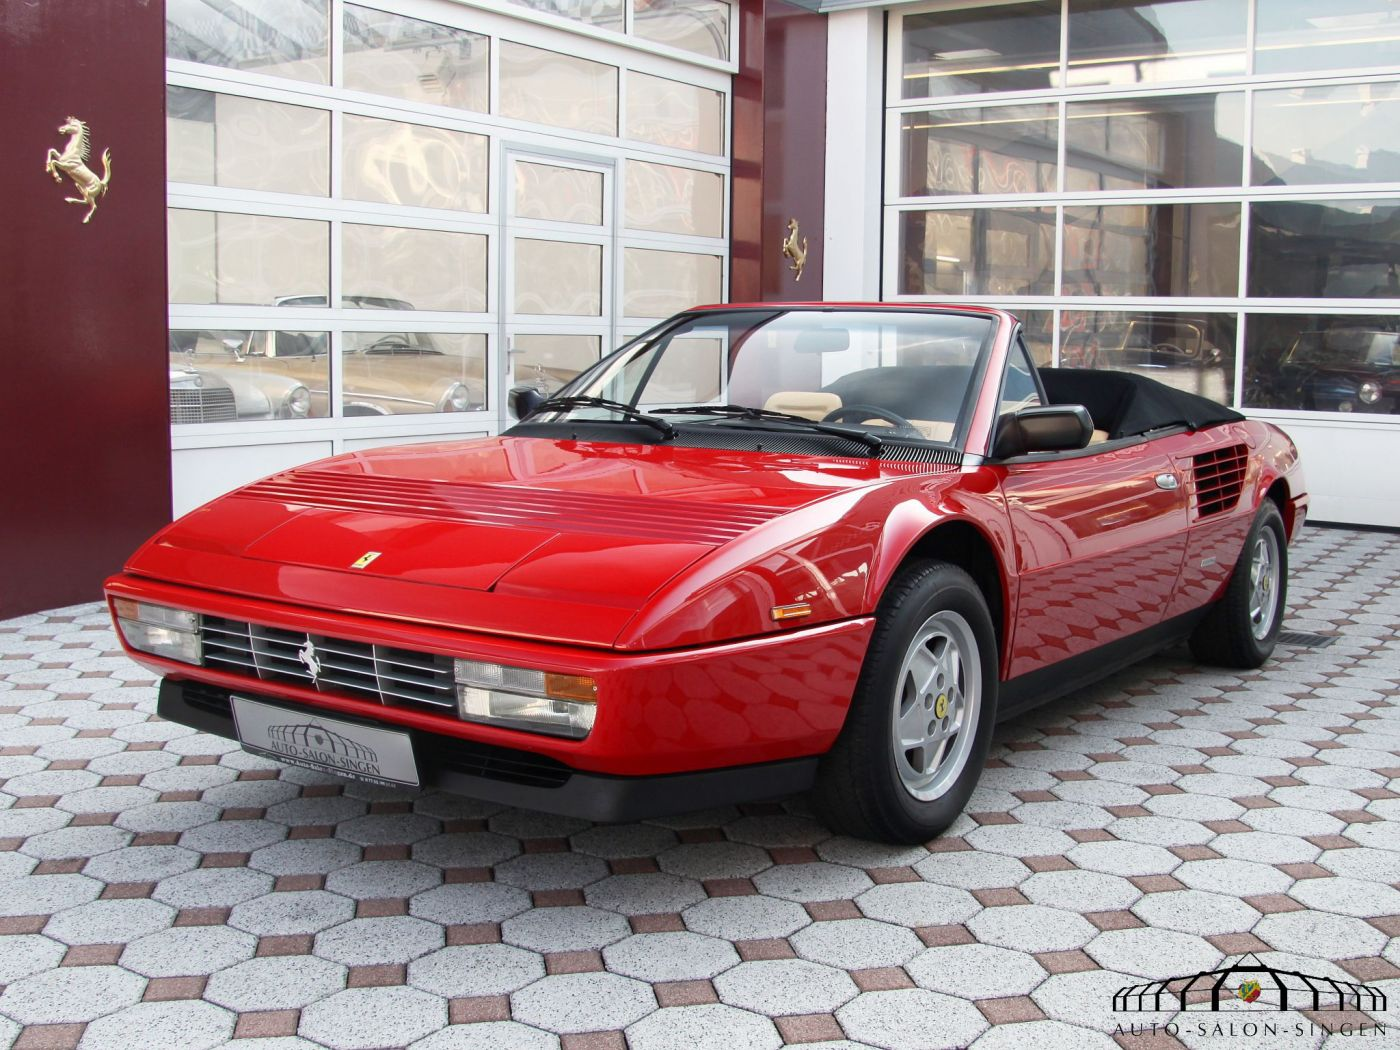 ferrari mondial 3 2 cabrio convertible auto salon singen. Black Bedroom Furniture Sets. Home Design Ideas